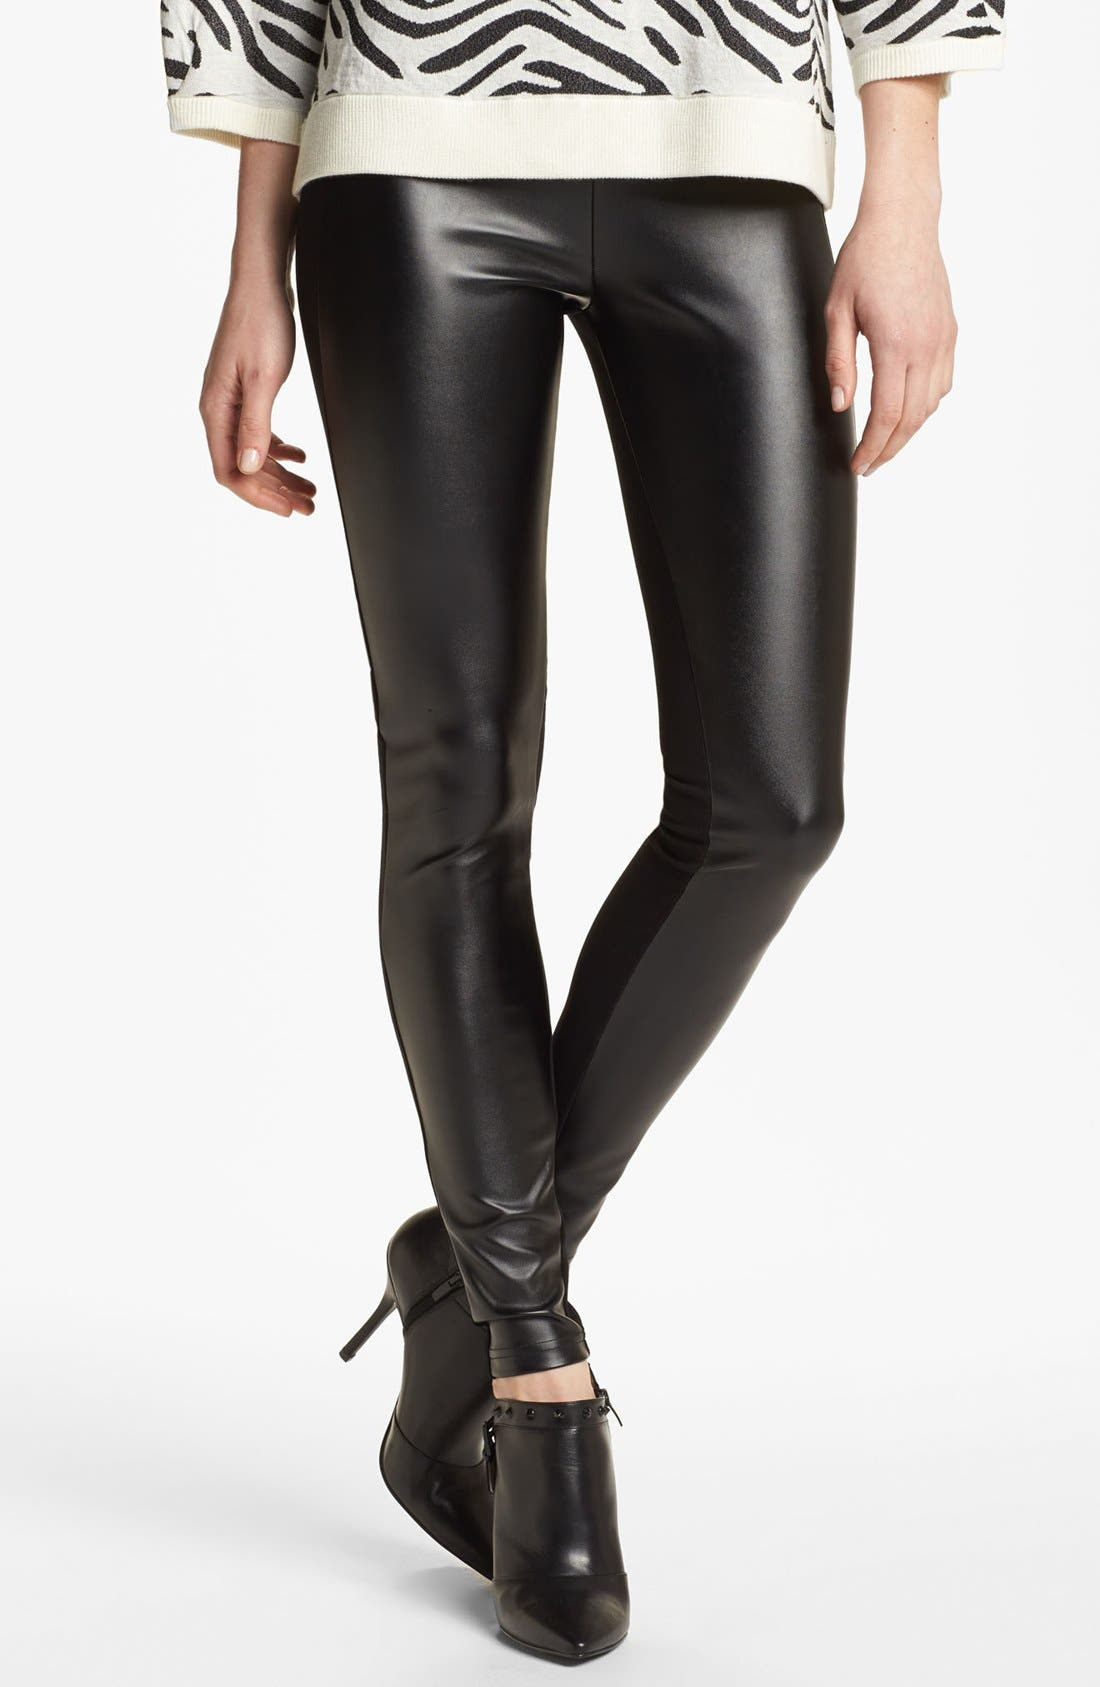 Alternate Image 1 Selected - Nordstrom 'Double Trouble' Knit & Faux Leather Leggings